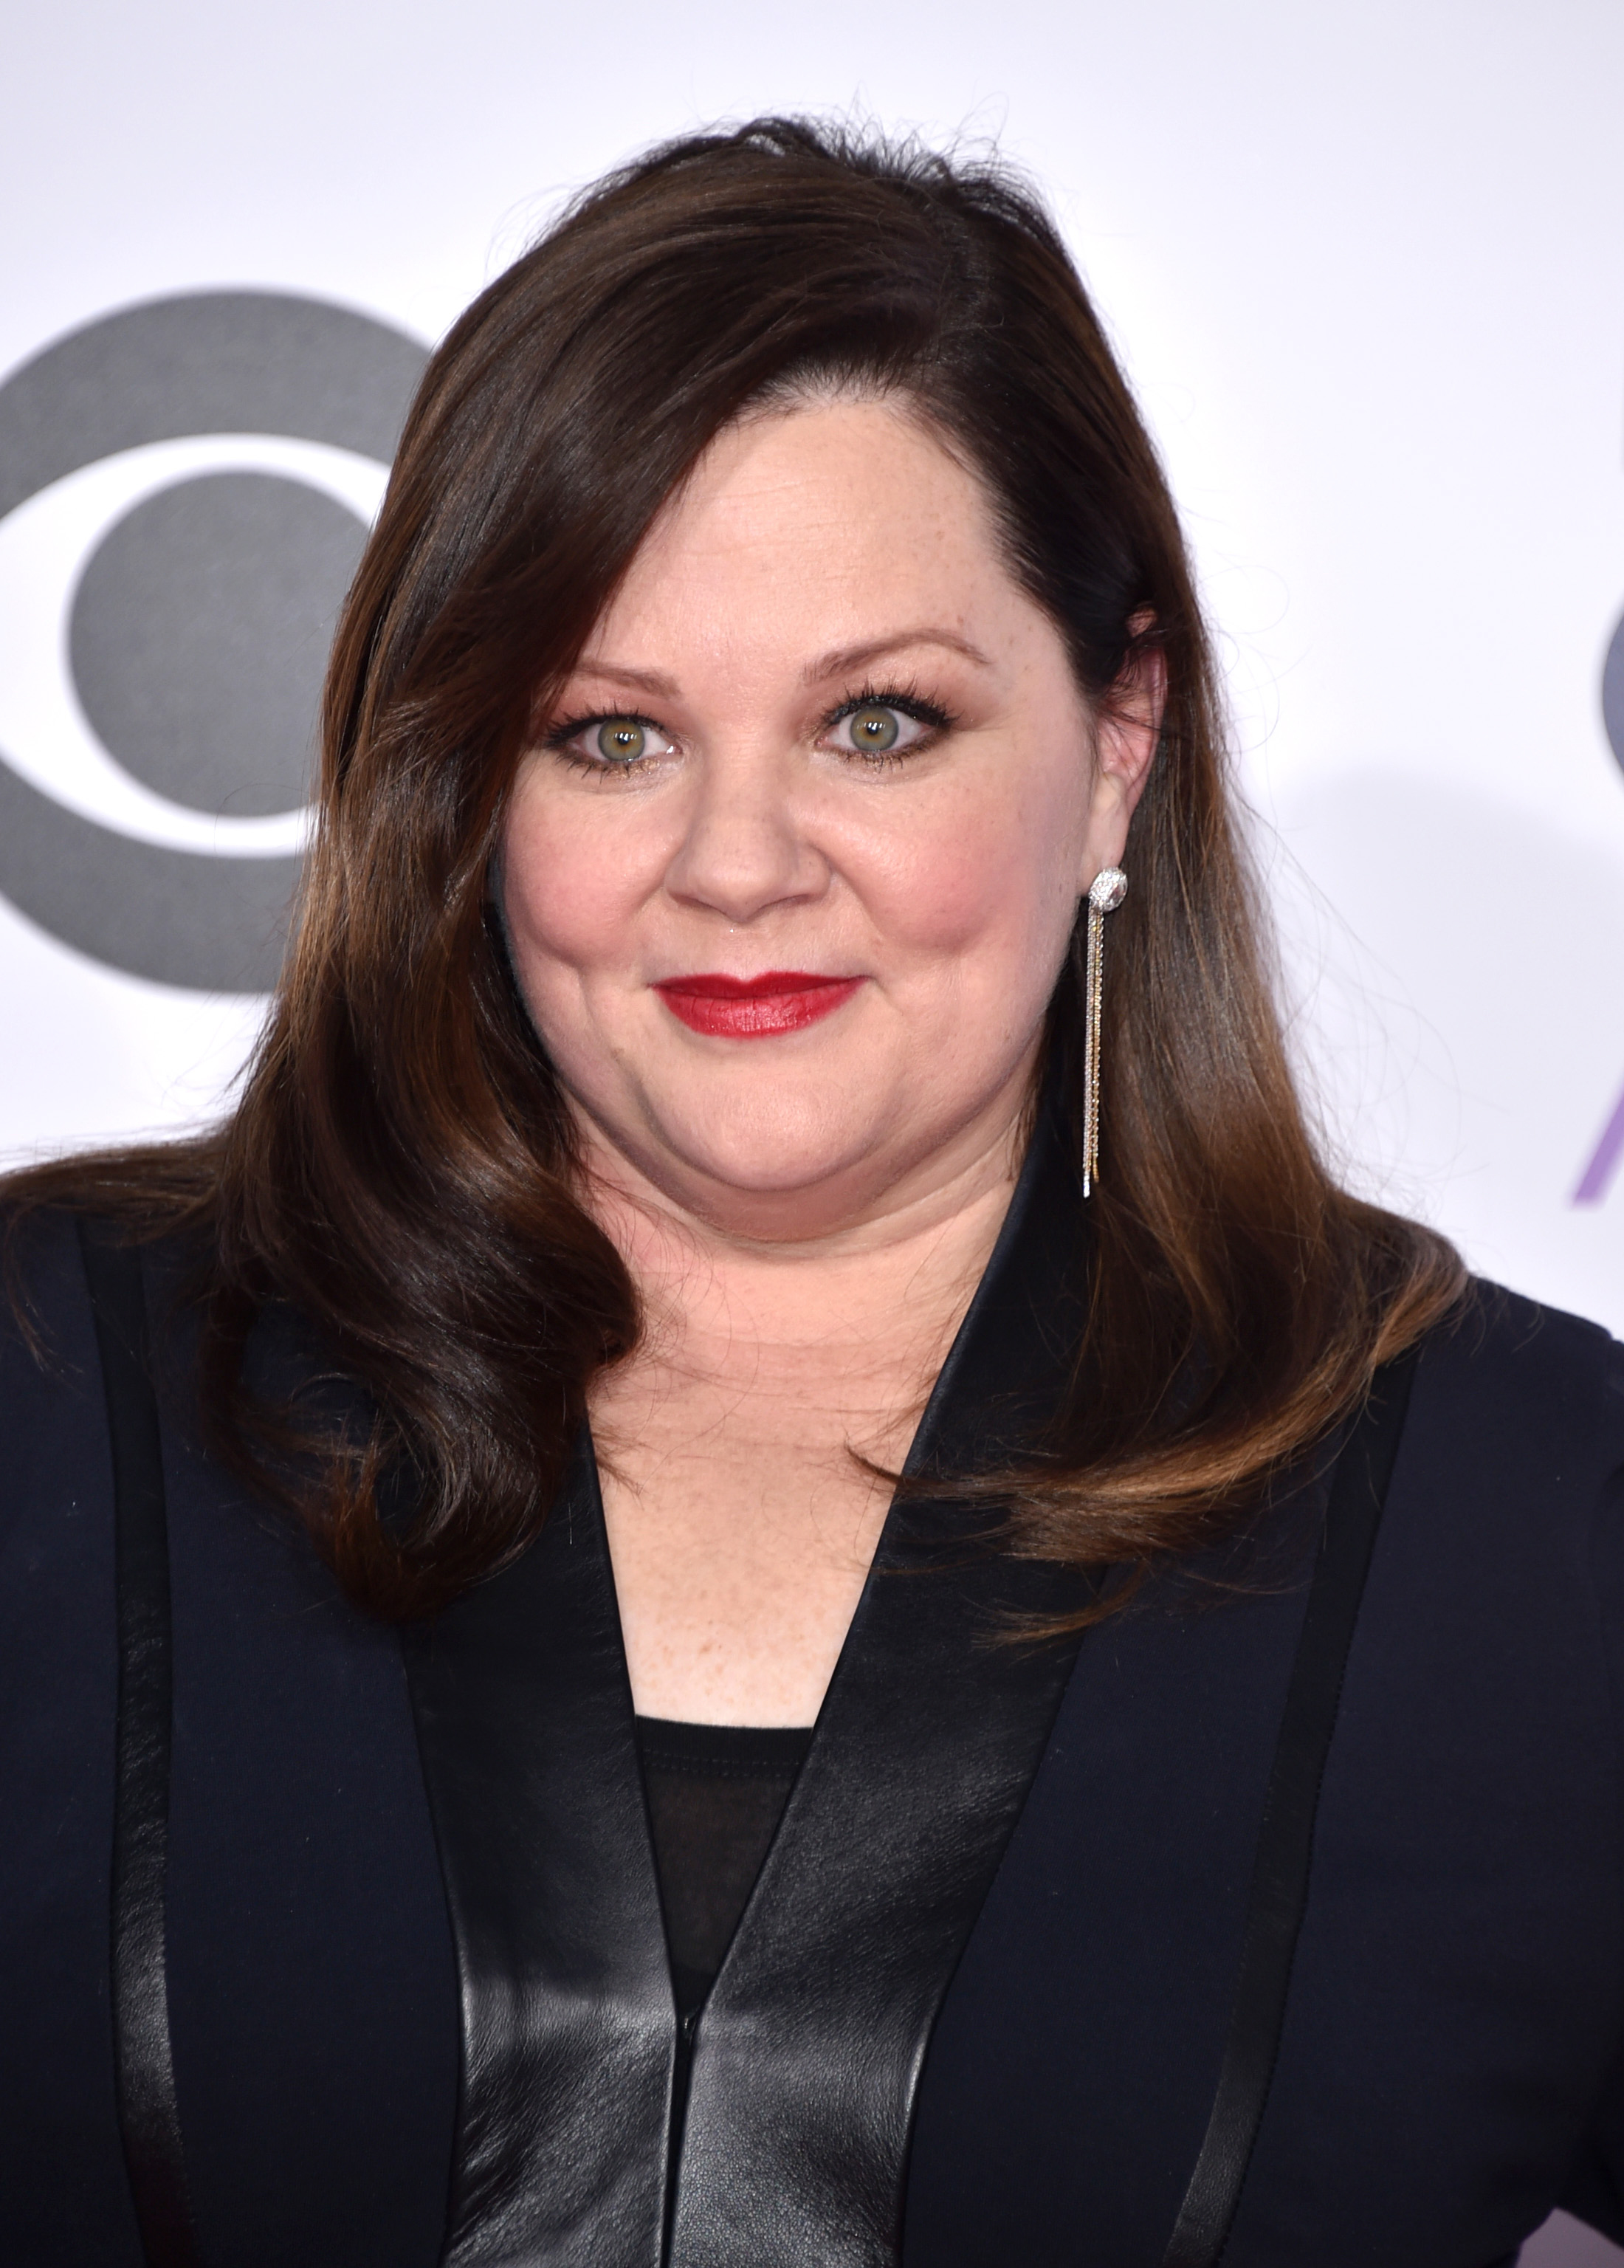 Melissa McCarthy arrives at the People's Choice Awards at the Nokia Theatre on Jan. 7, 2015, in Los Angeles.